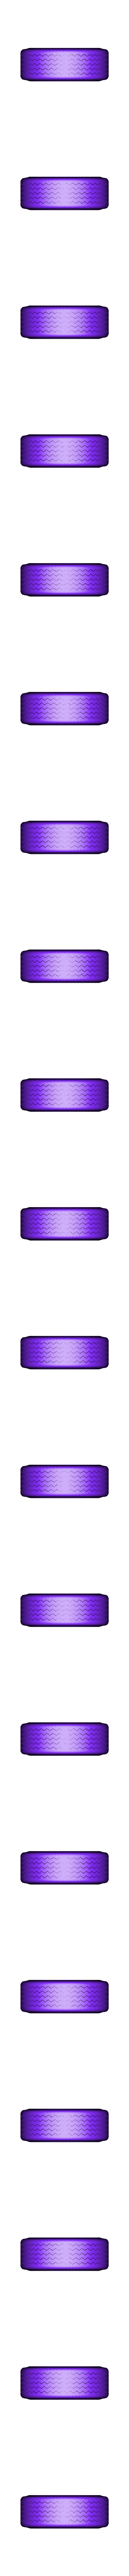 Tyre2-H.STL Download free STL file Tyre - Tyre With Rims and Rims only (updated) • 3D printer object, arifsethi